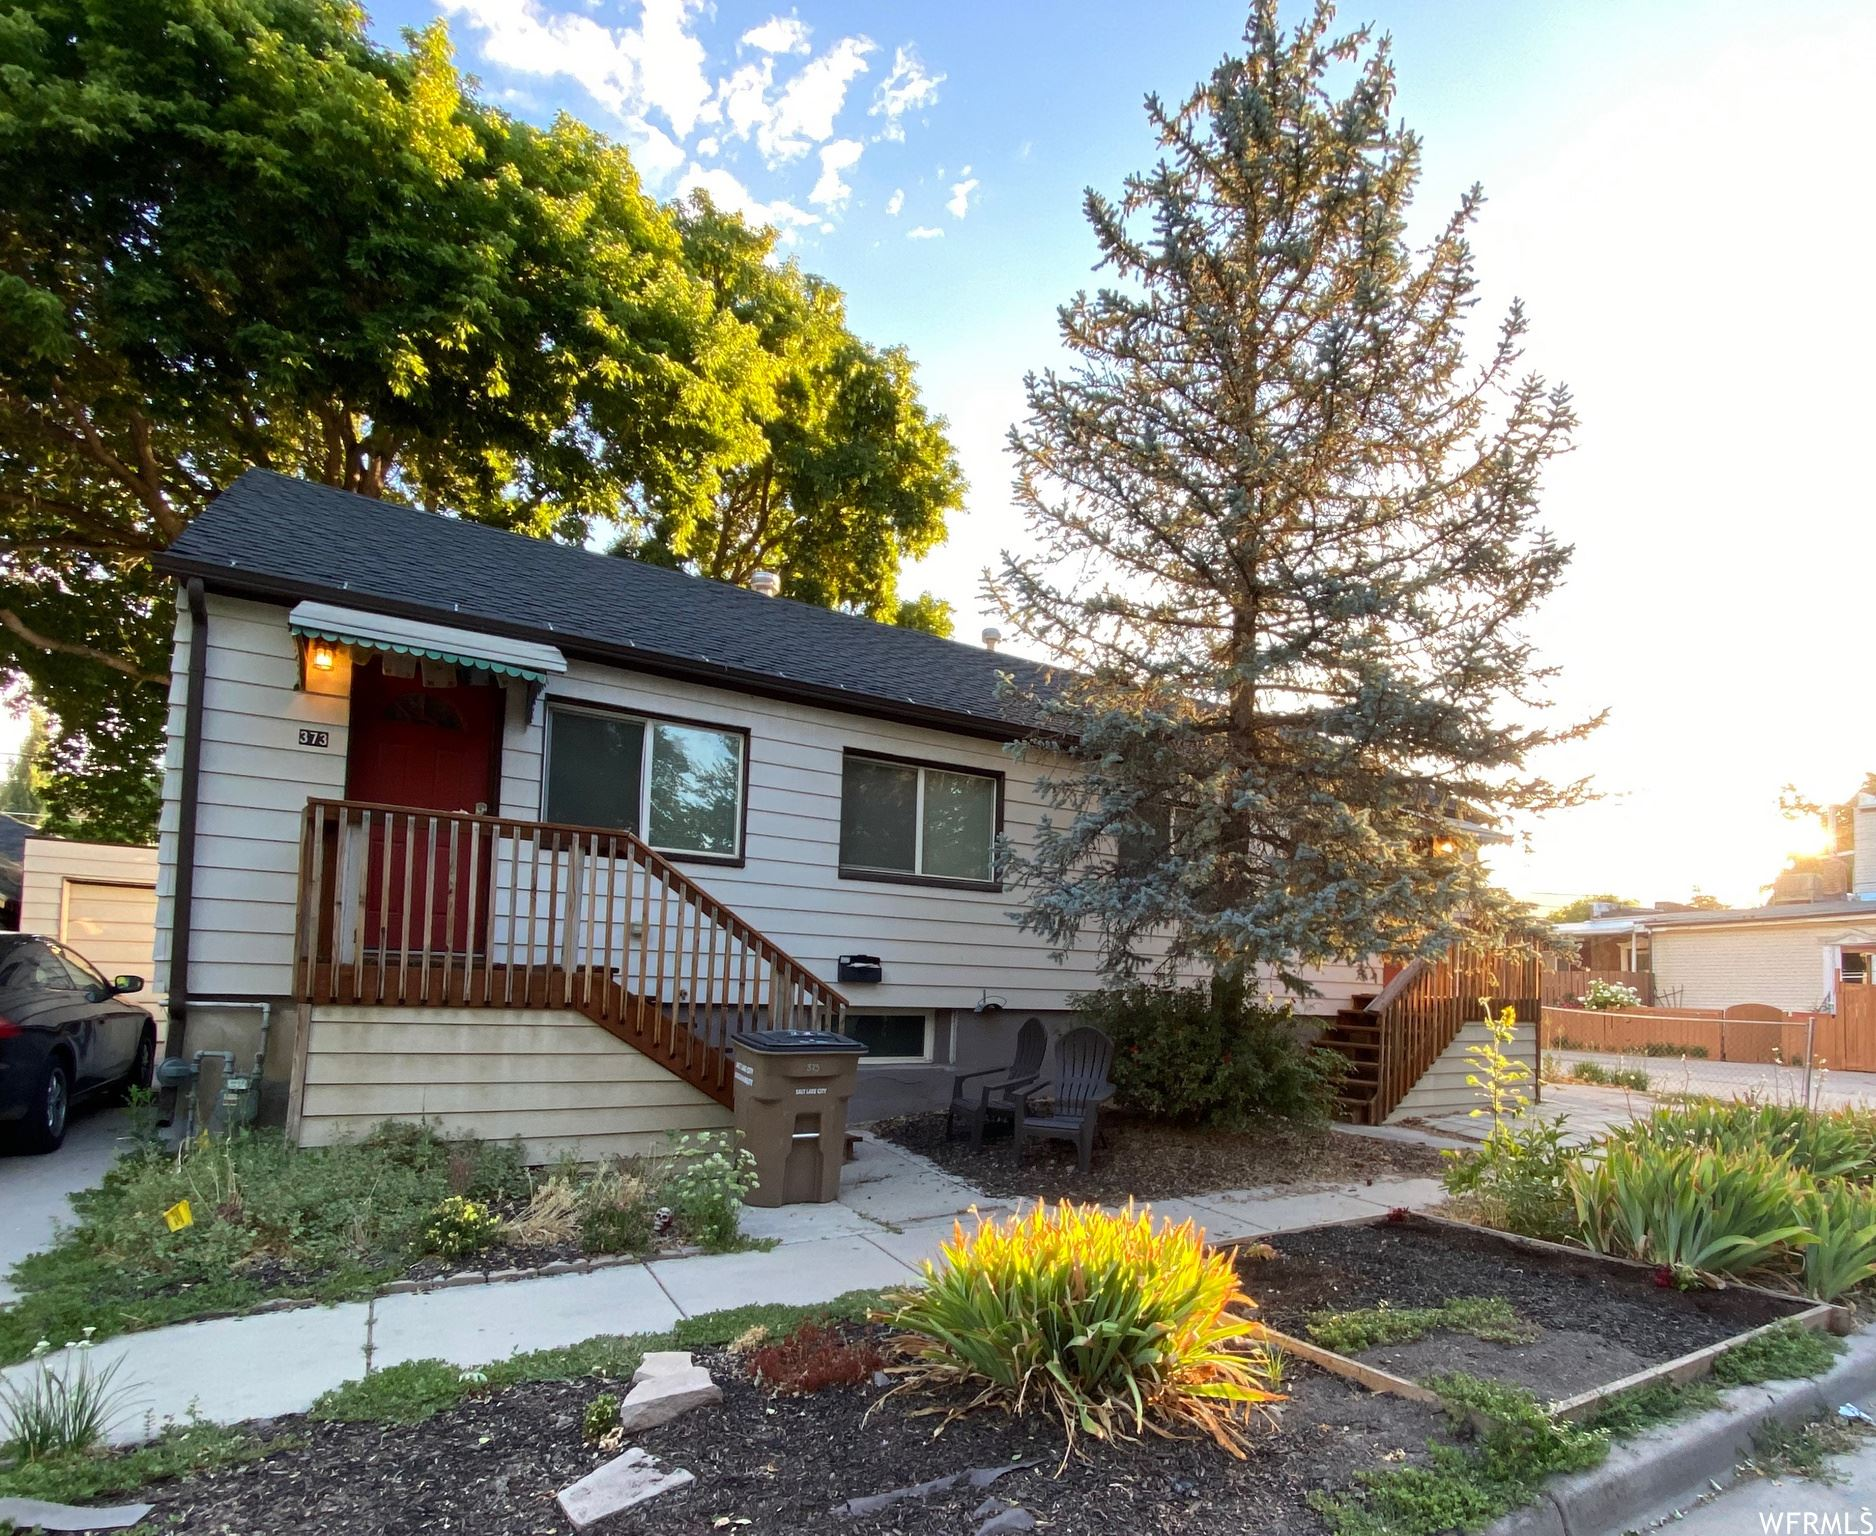 Photo of 373 E ROOSEVELT AVE, Salt Lake City, UT 84115 (MLS # 1689940)